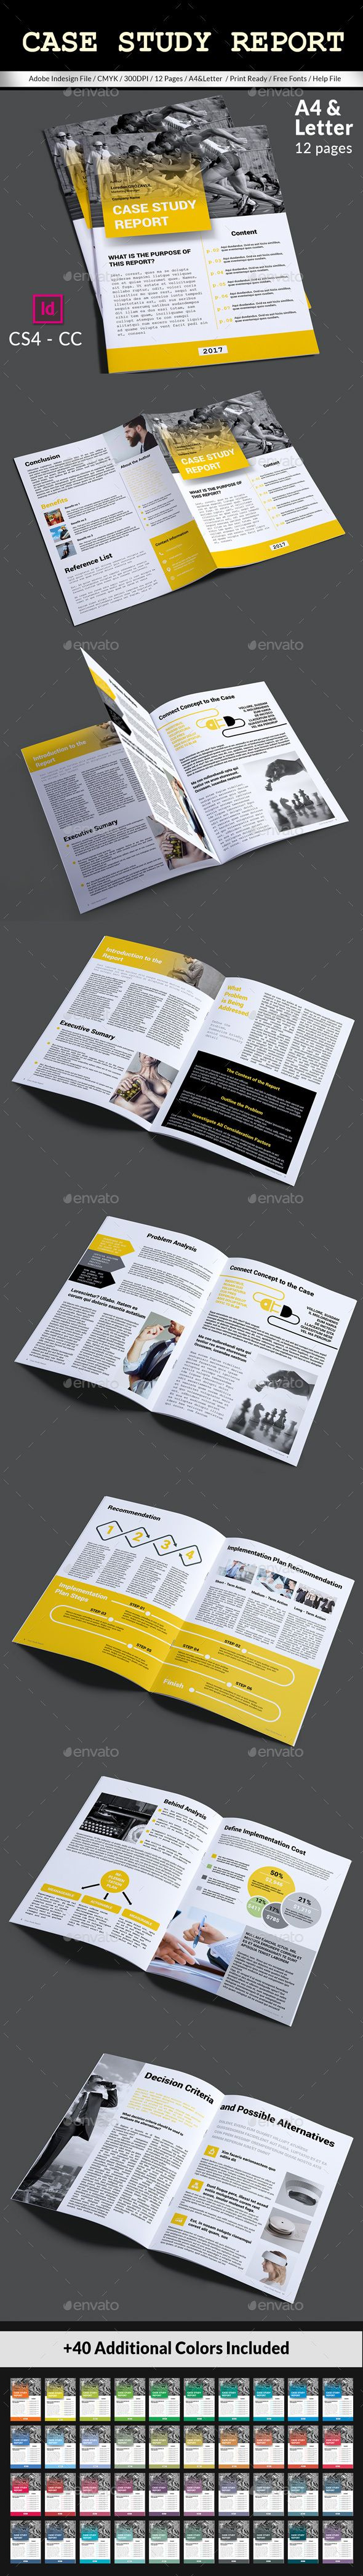 Case Study Report Template | Template, Newsletter templates and ...